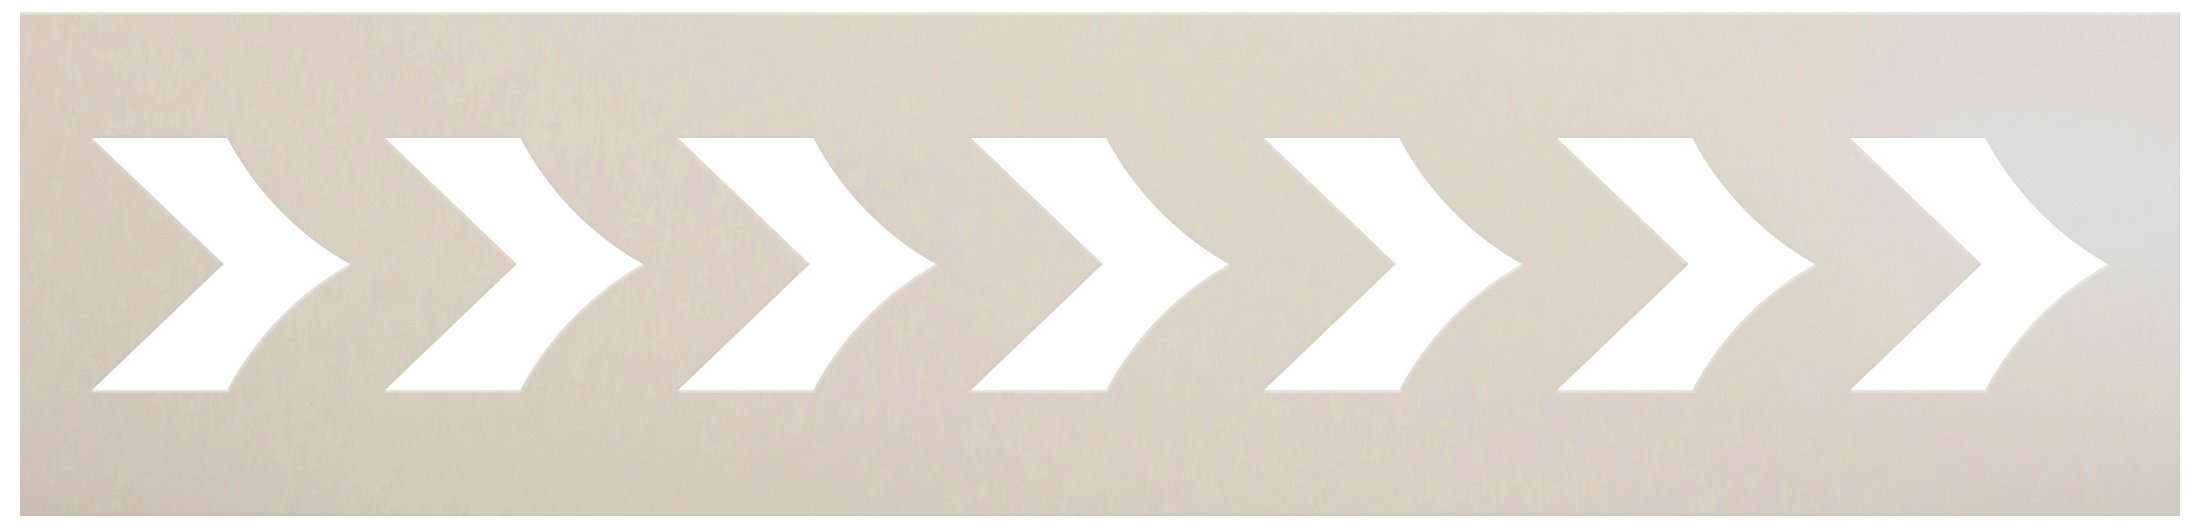 Curved Chevron Pattern Stencil by StudioR12   DIY Greek Arrow Border Home Decor   Craft & Paint Wood Sign   Reusable Mylar Template   Select Size